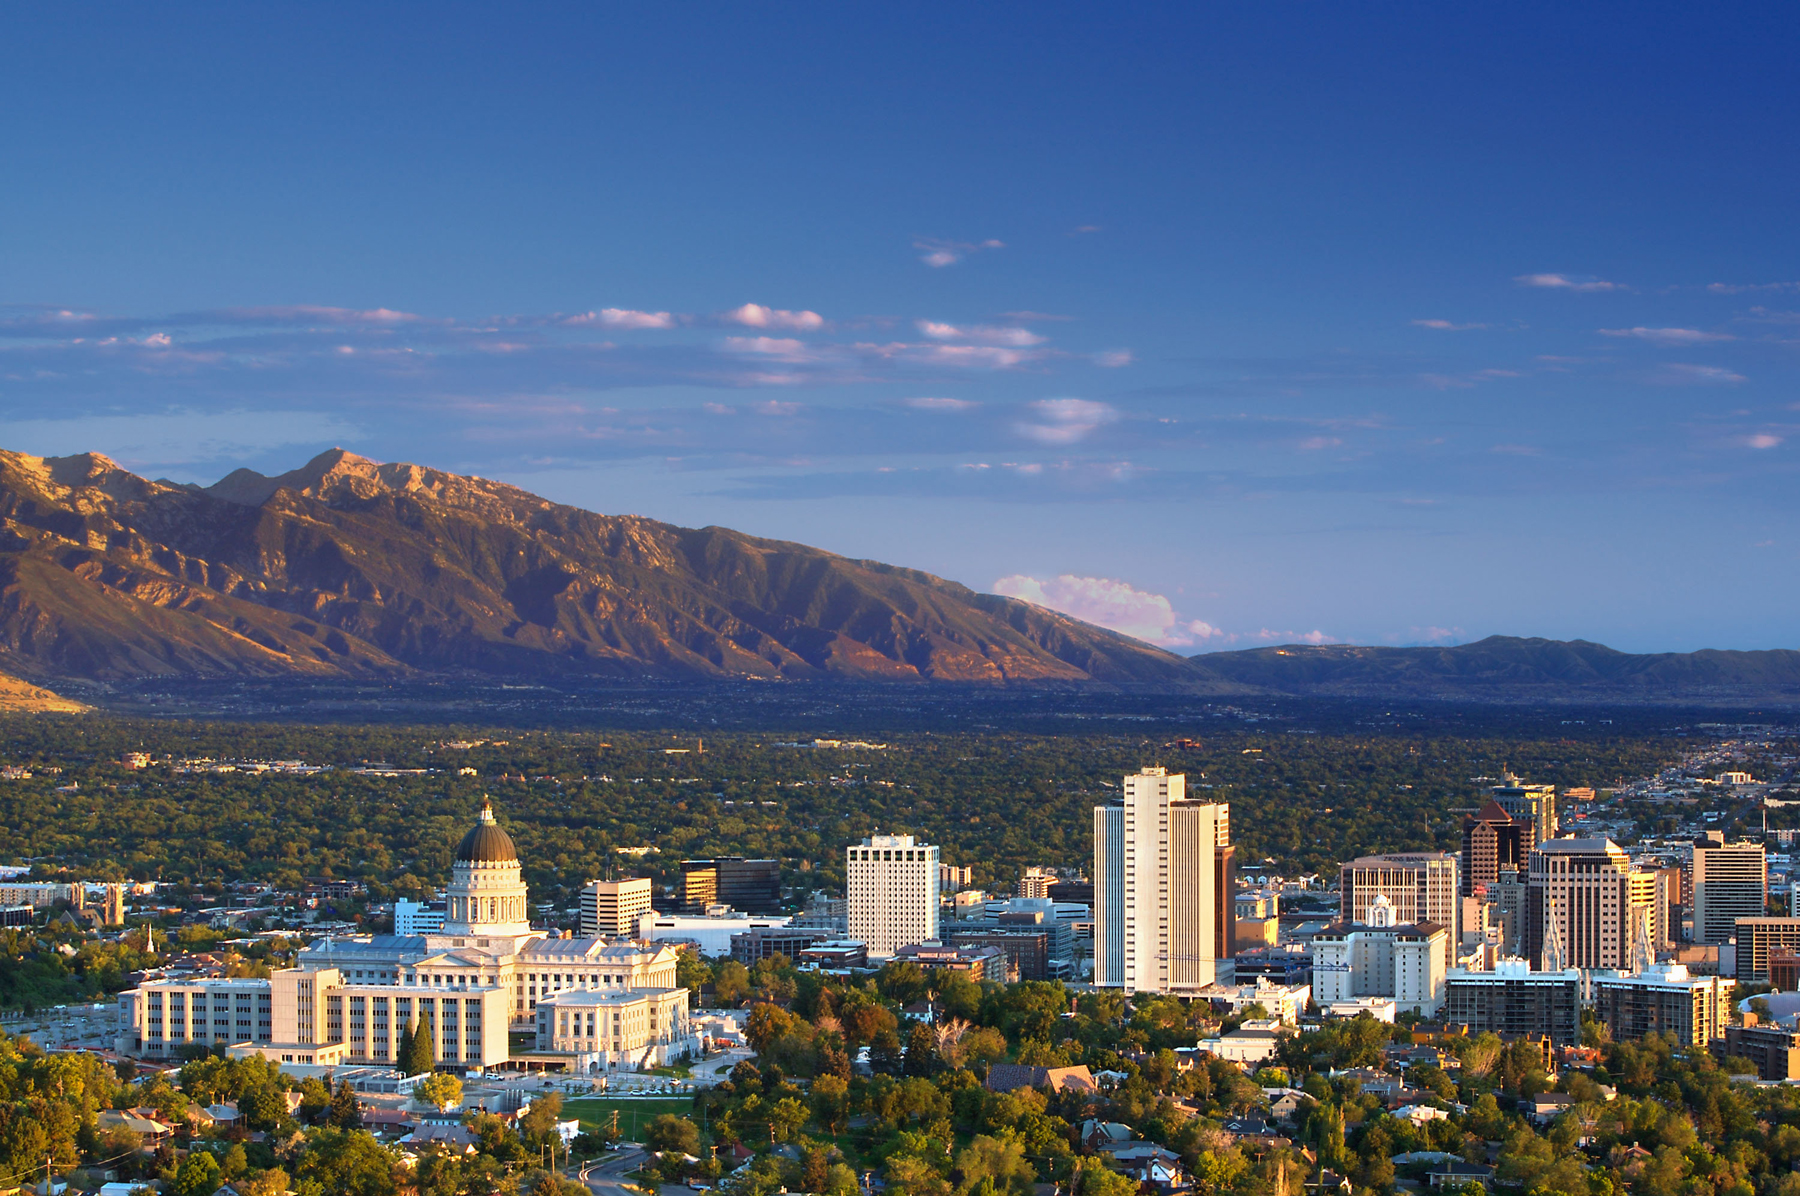 Cityscapes SLValley_A_Barker_6068